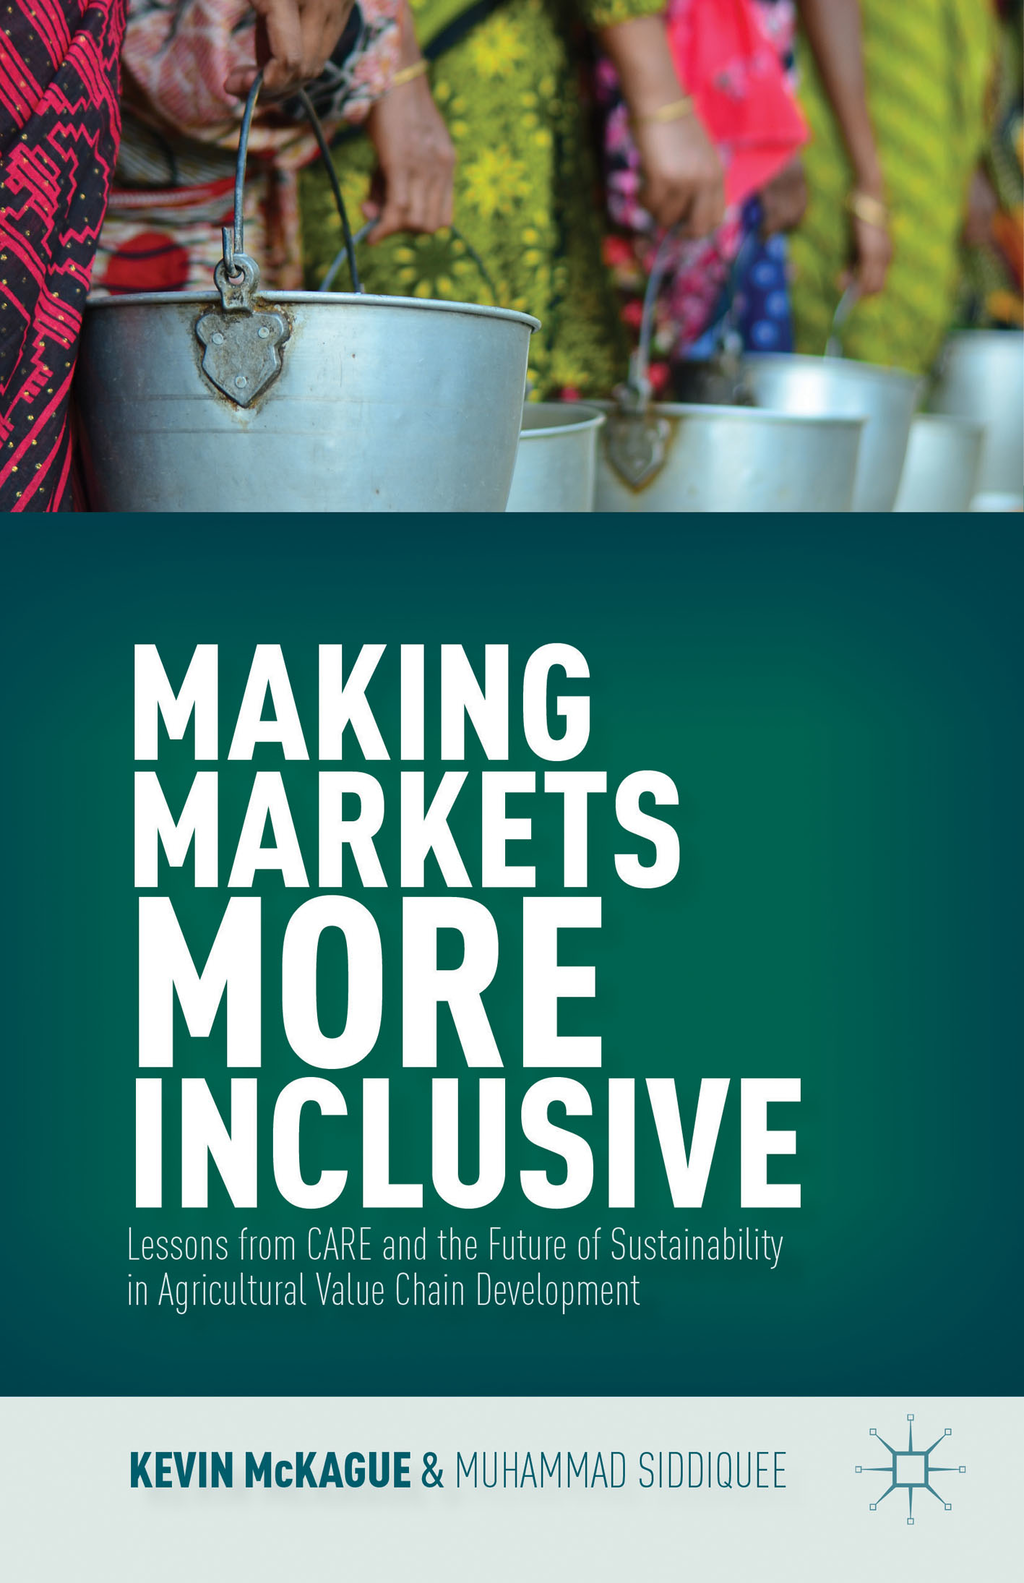 Making Markets More Inclusive Lessons from CARE and the Future of Sustainability in Agricultural Value Chain Development